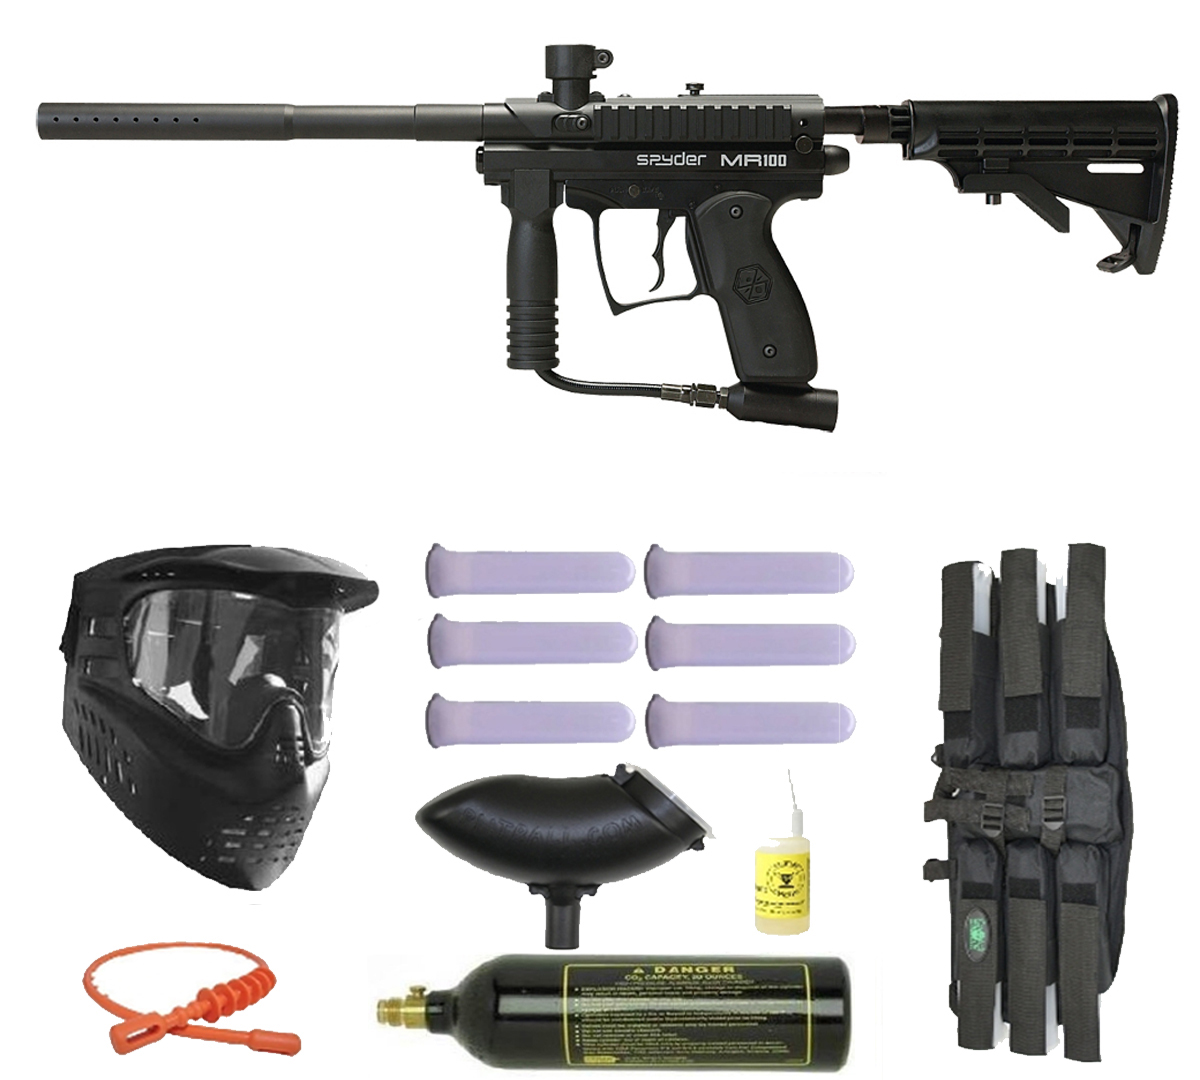 Spyder MR1 Paintball Marker Gun 3Skull Mega Set Black by